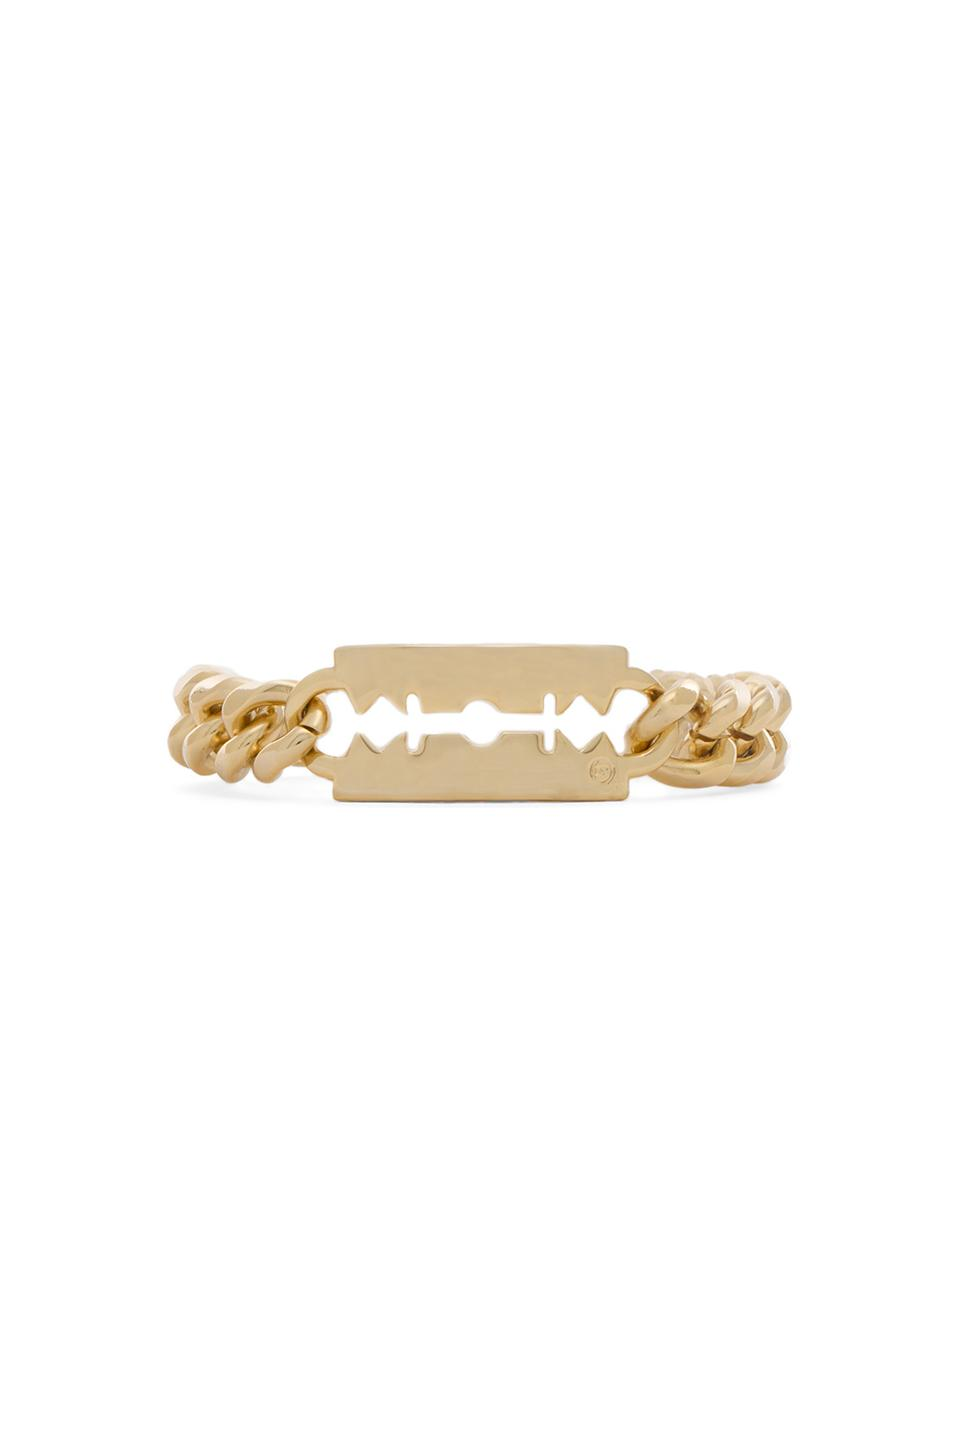 McQ Alexander McQueen Chunchy Chain Bracelet in Light Shiny Gold